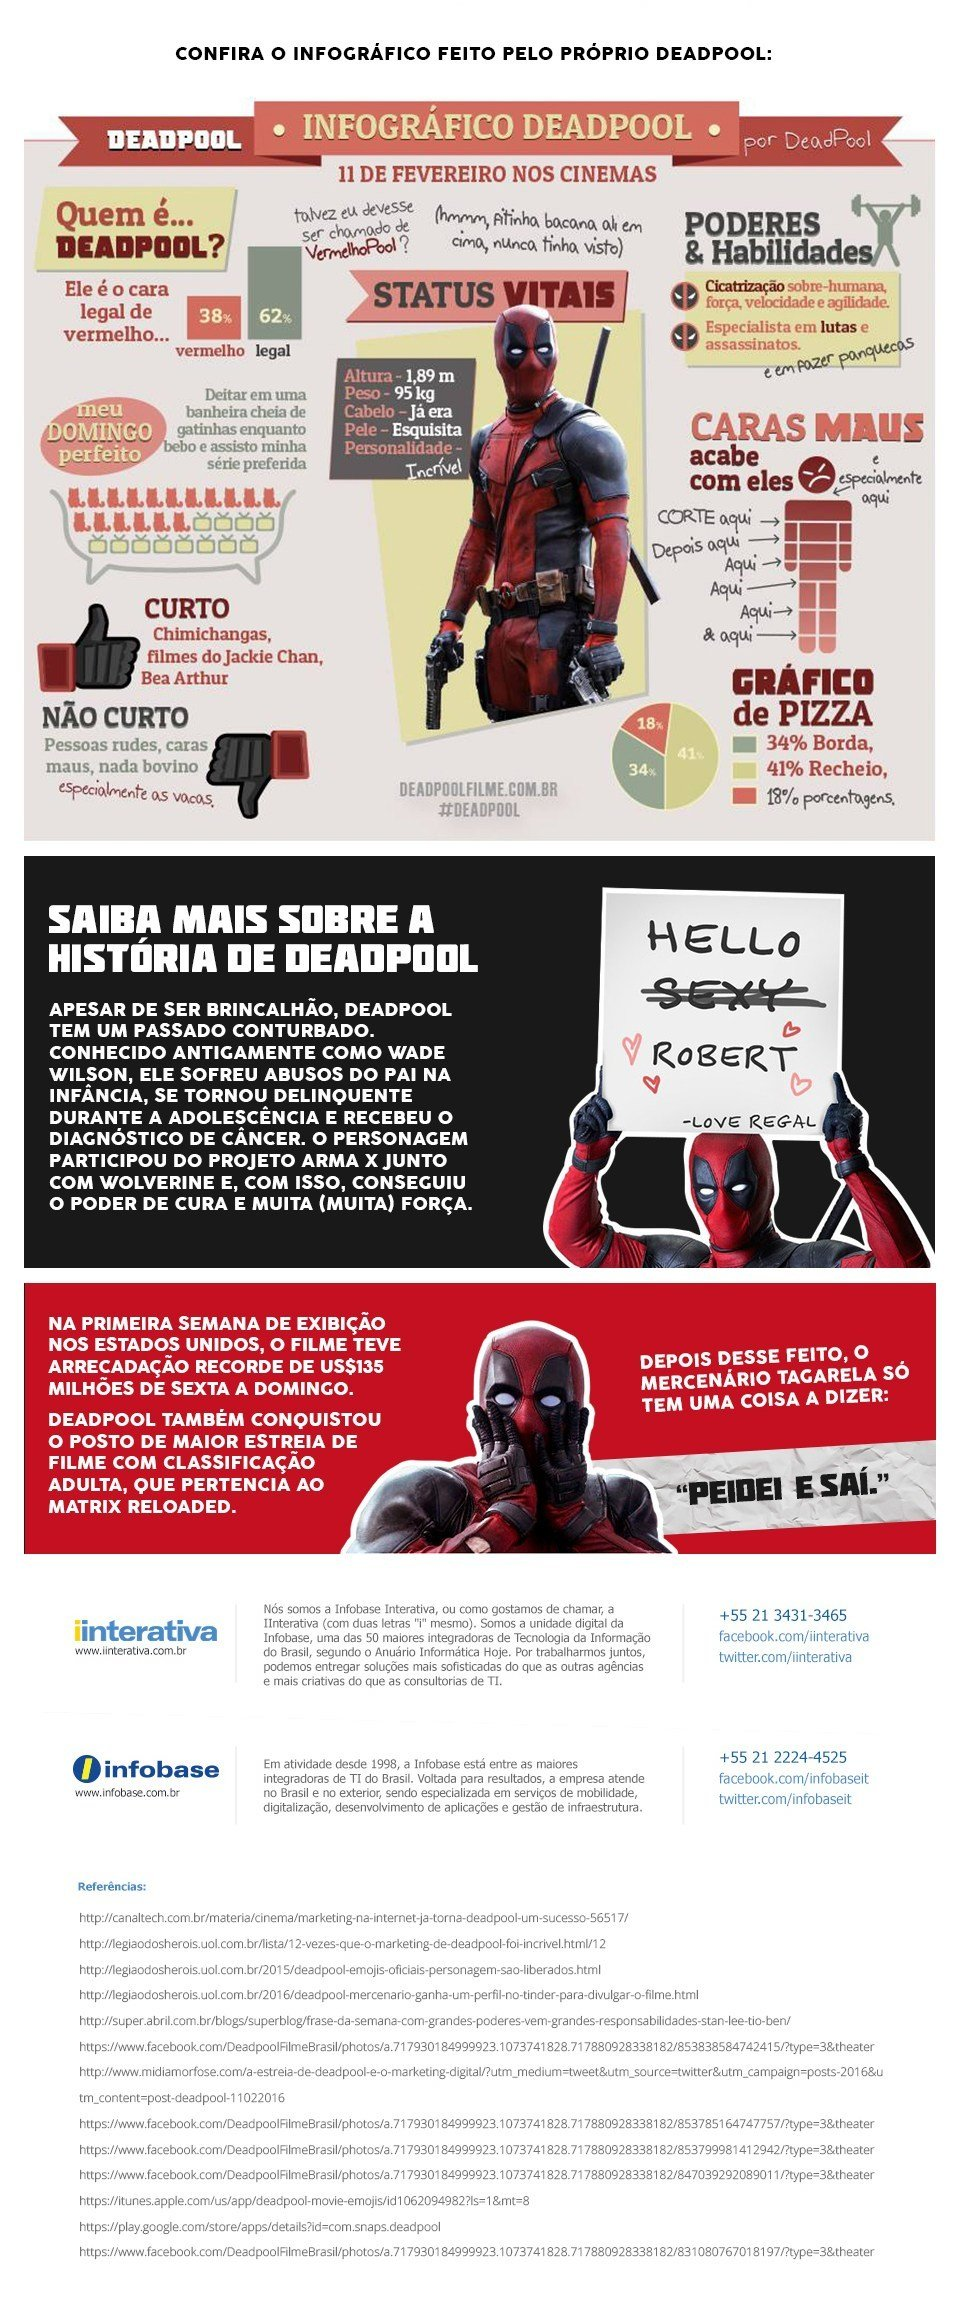 Deadpool e a estratégia de marketing digital-03